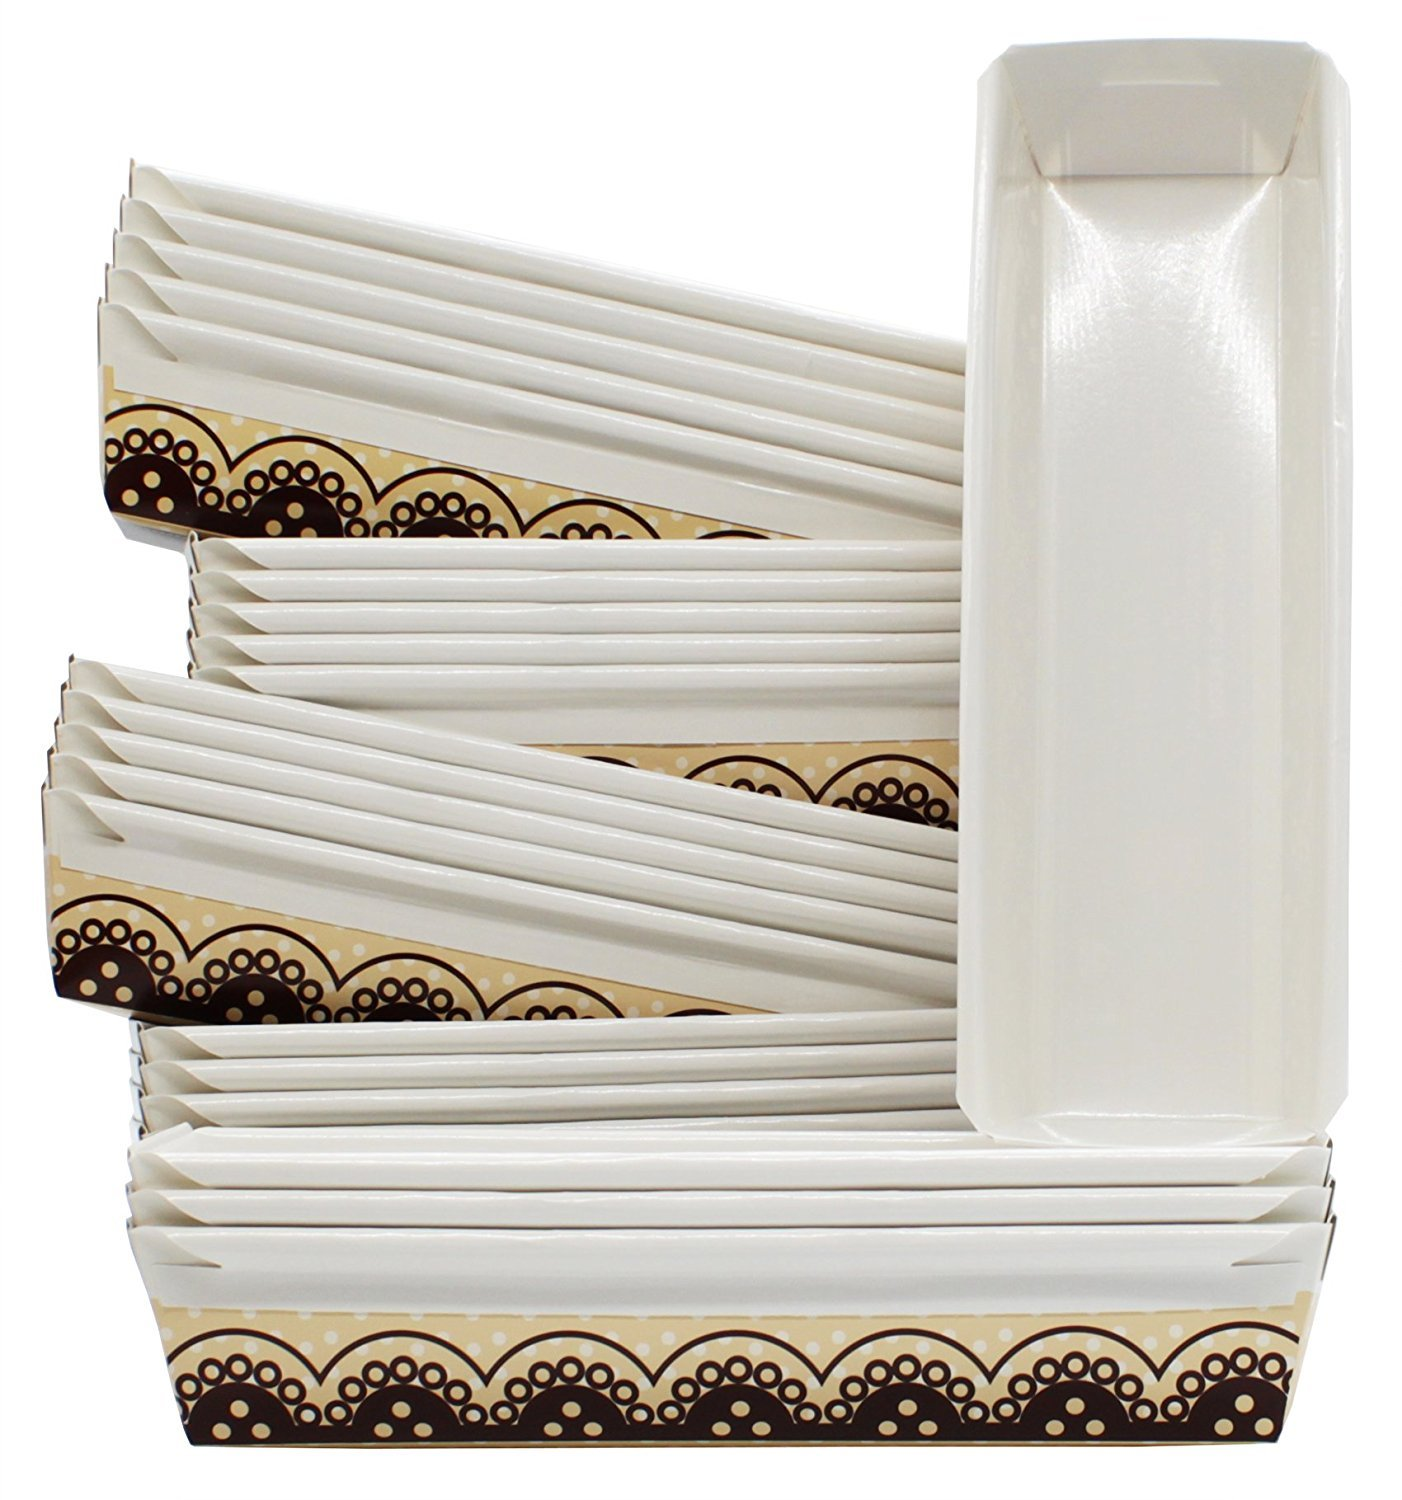 Hanamal Baking Paper Loaf Pans 11 x 3.5 x 2 Inches (Pack of 24) (Design 1)